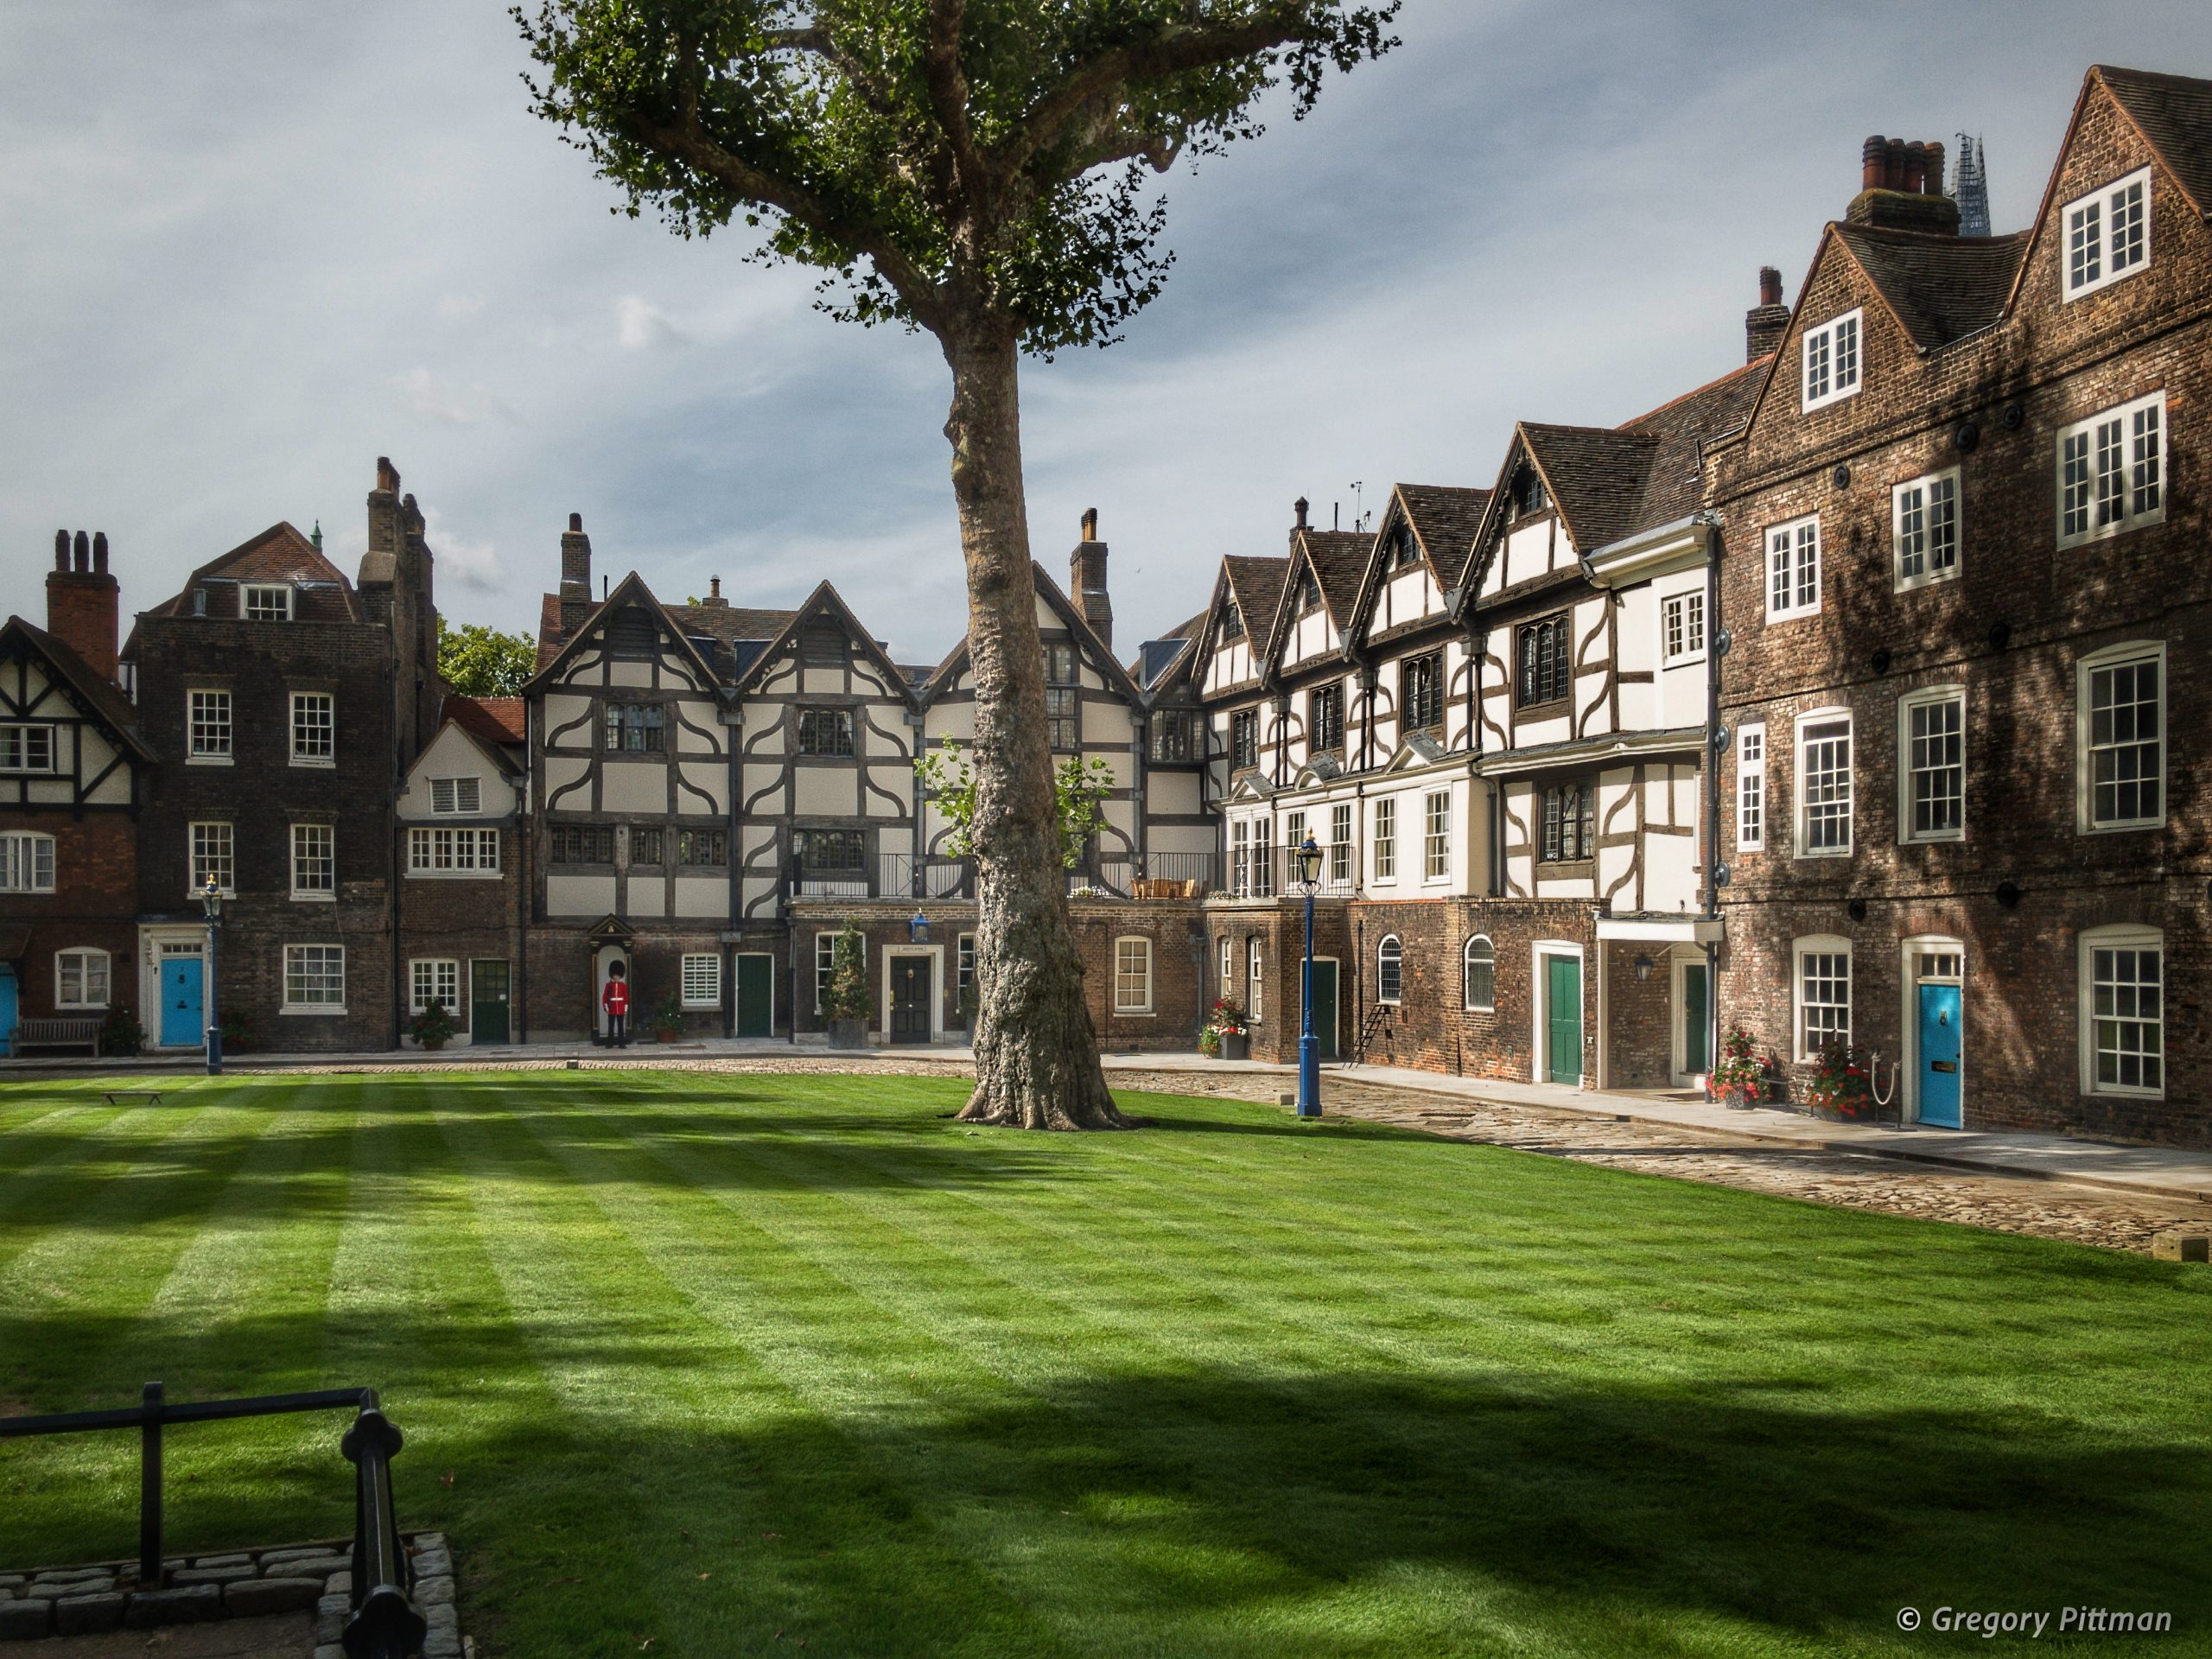 The Queen's House, Tower Green, The Tower of London, England